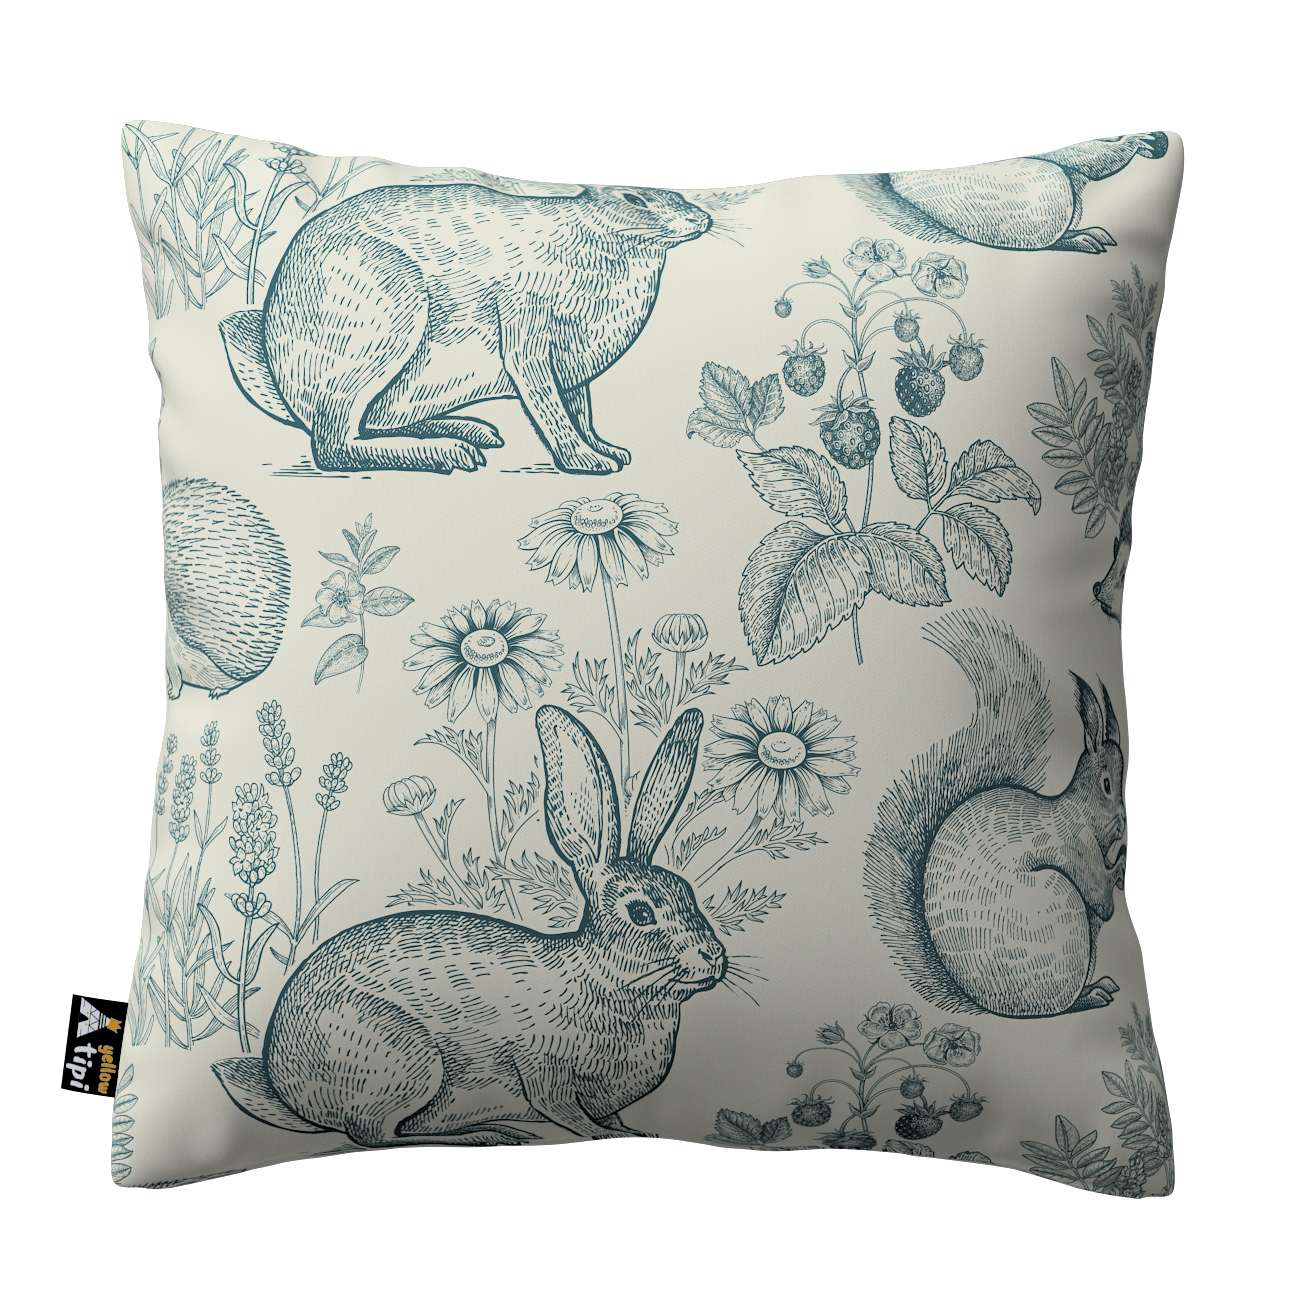 Milly cushion cover in collection Magic Collection, fabric: 500-04